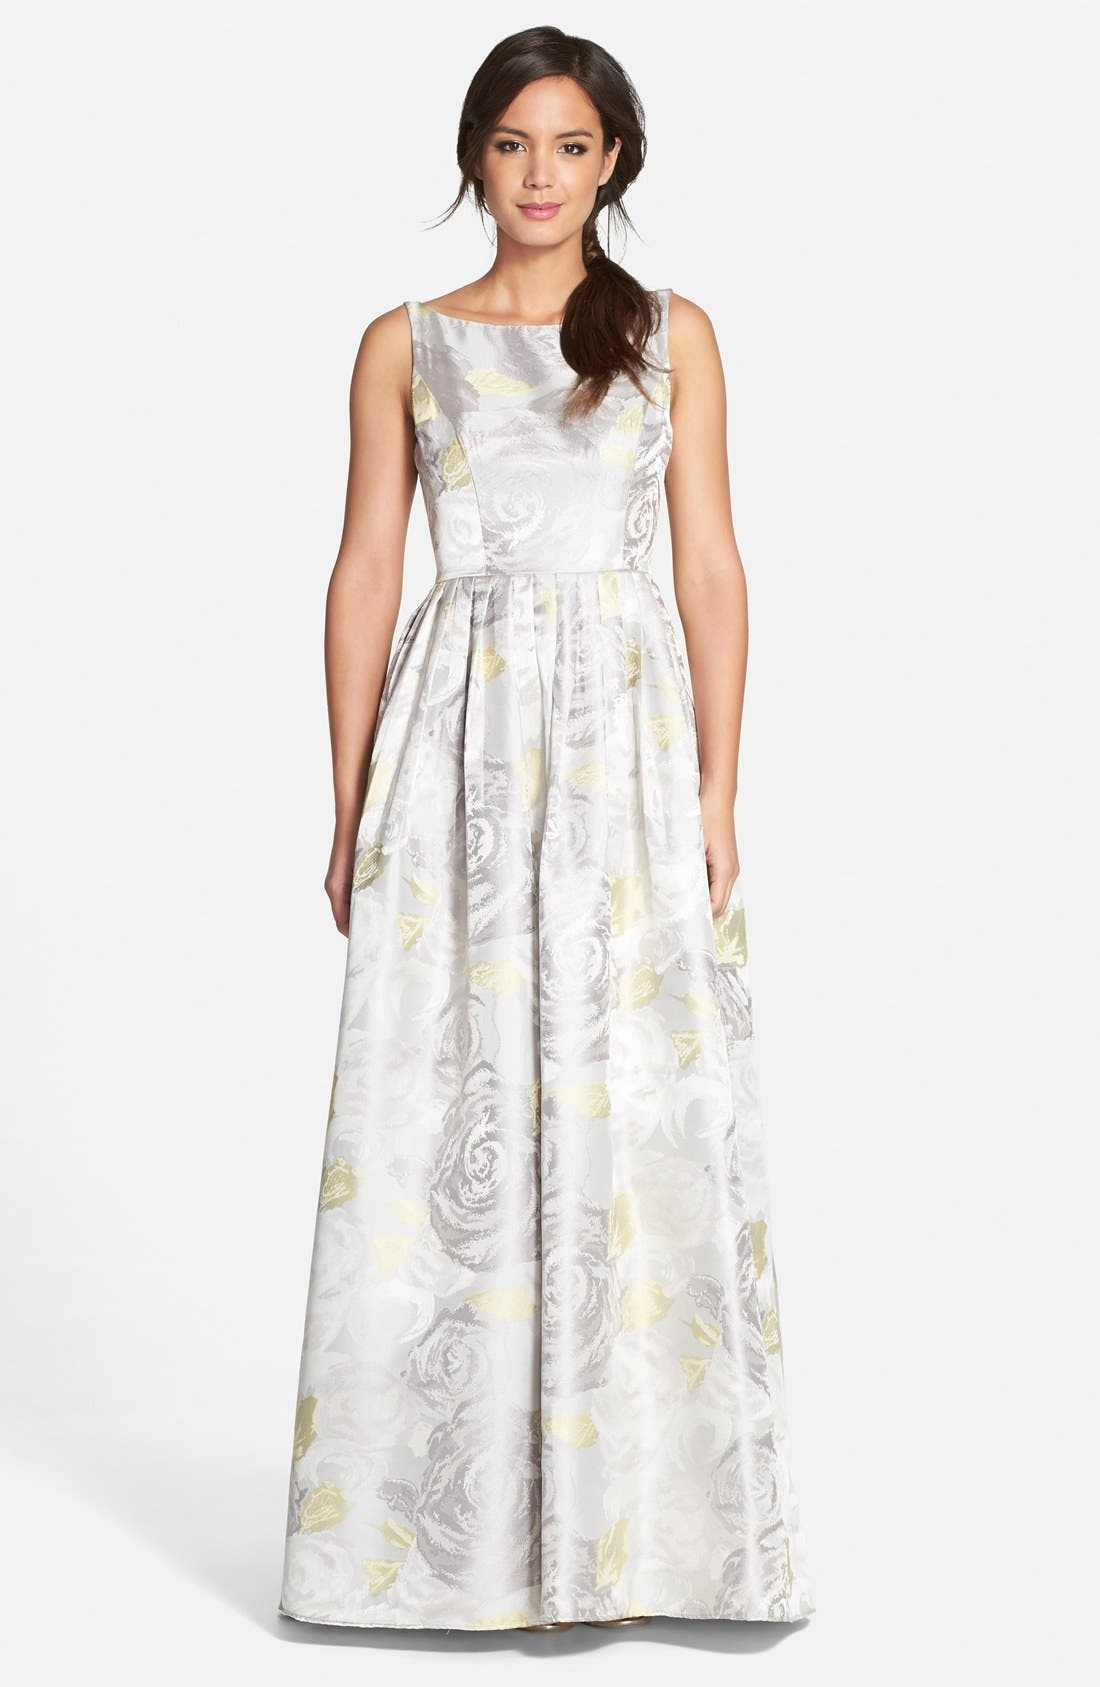 Main Image - Adrianna Papell Floral Print Jacquard Ballgown